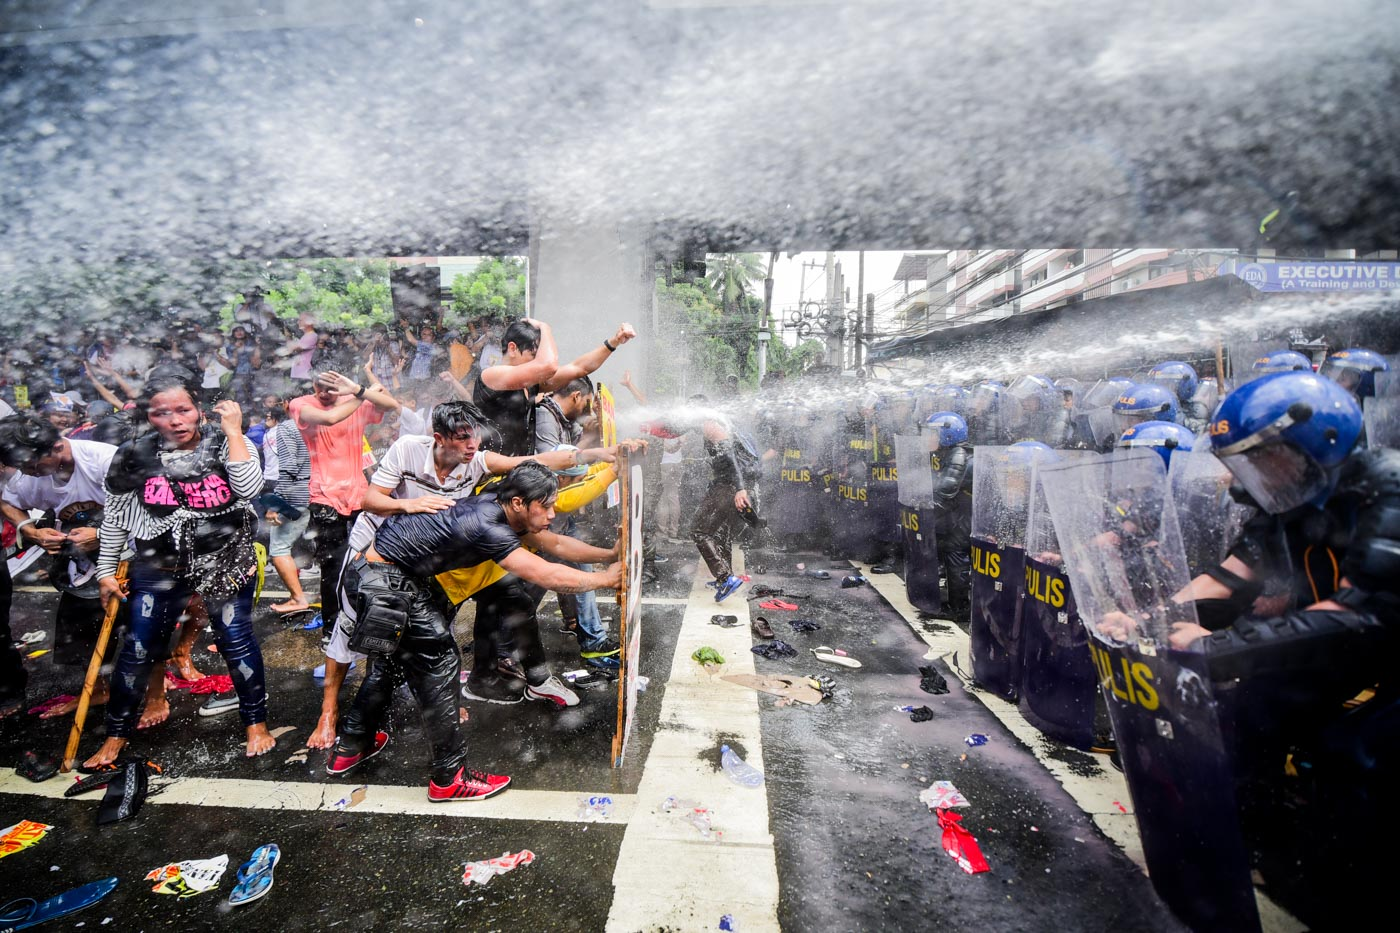 REPEL. To repel protesters, police use water cannons and sonic alarm.